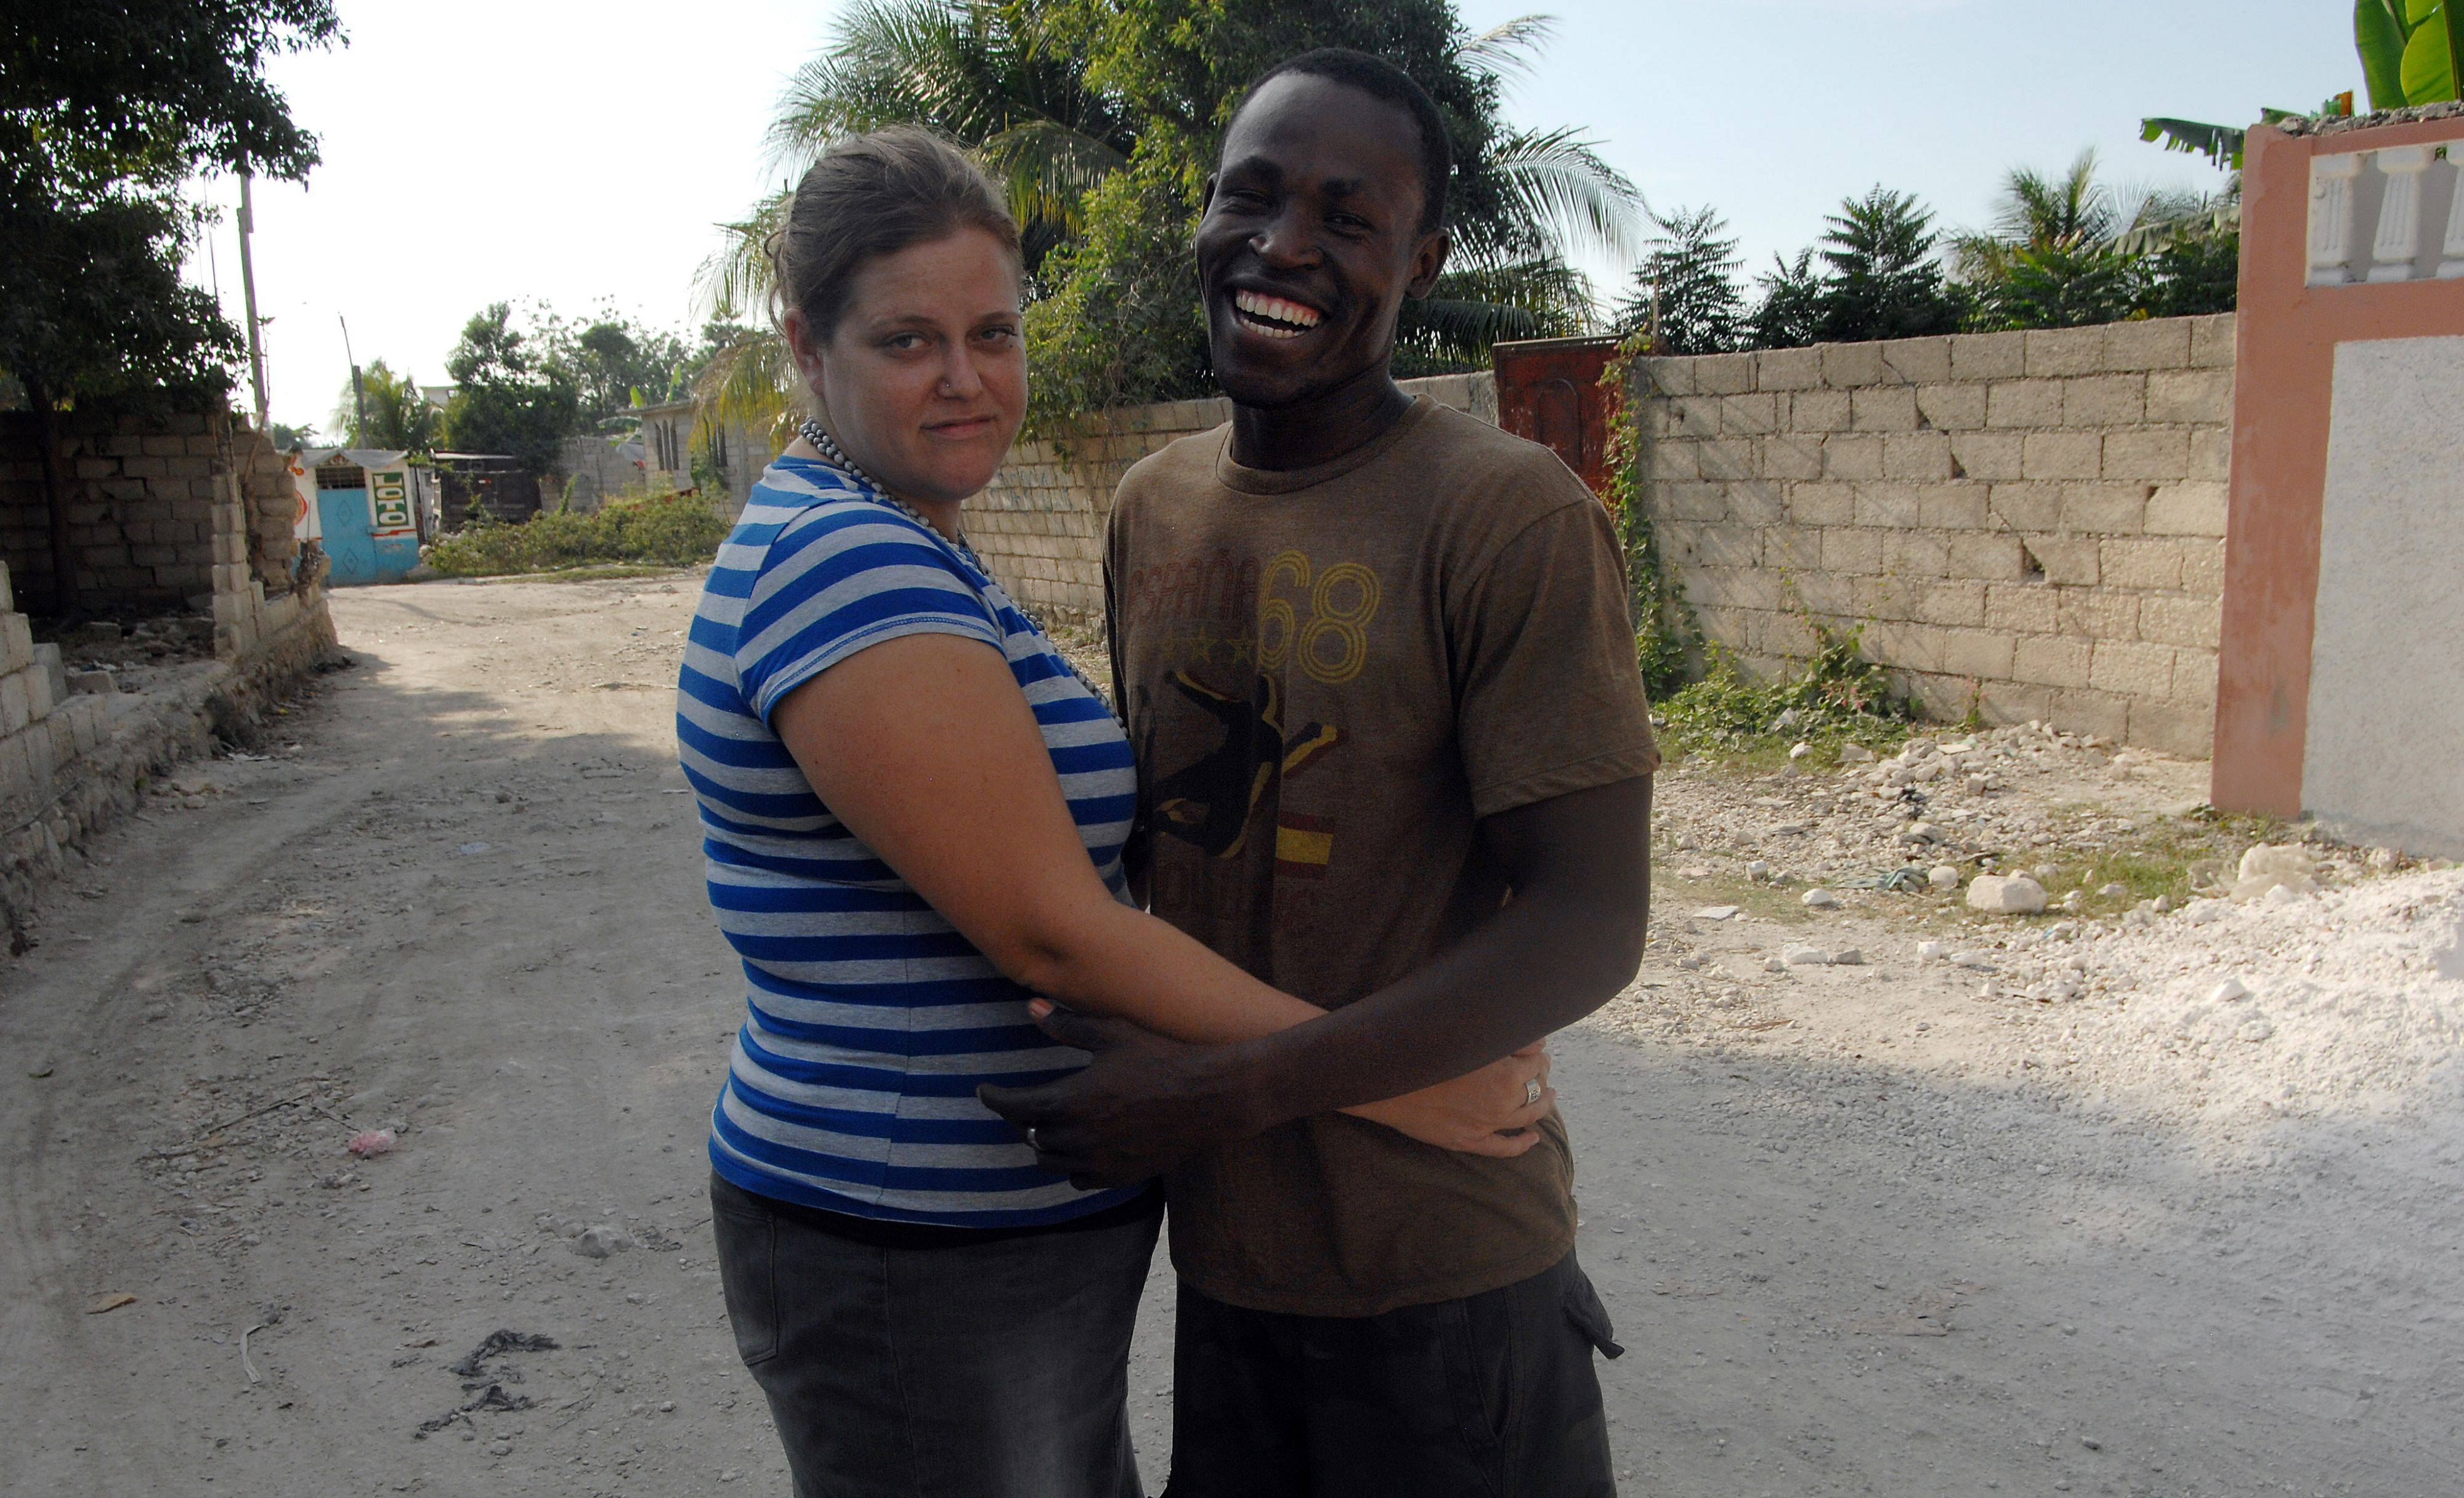 Lionel Legoute, formerly of Palatine, and his fiancee Rachel Ehrhard of Oak Park share a moment in Port-au-Prince on Tuesday.